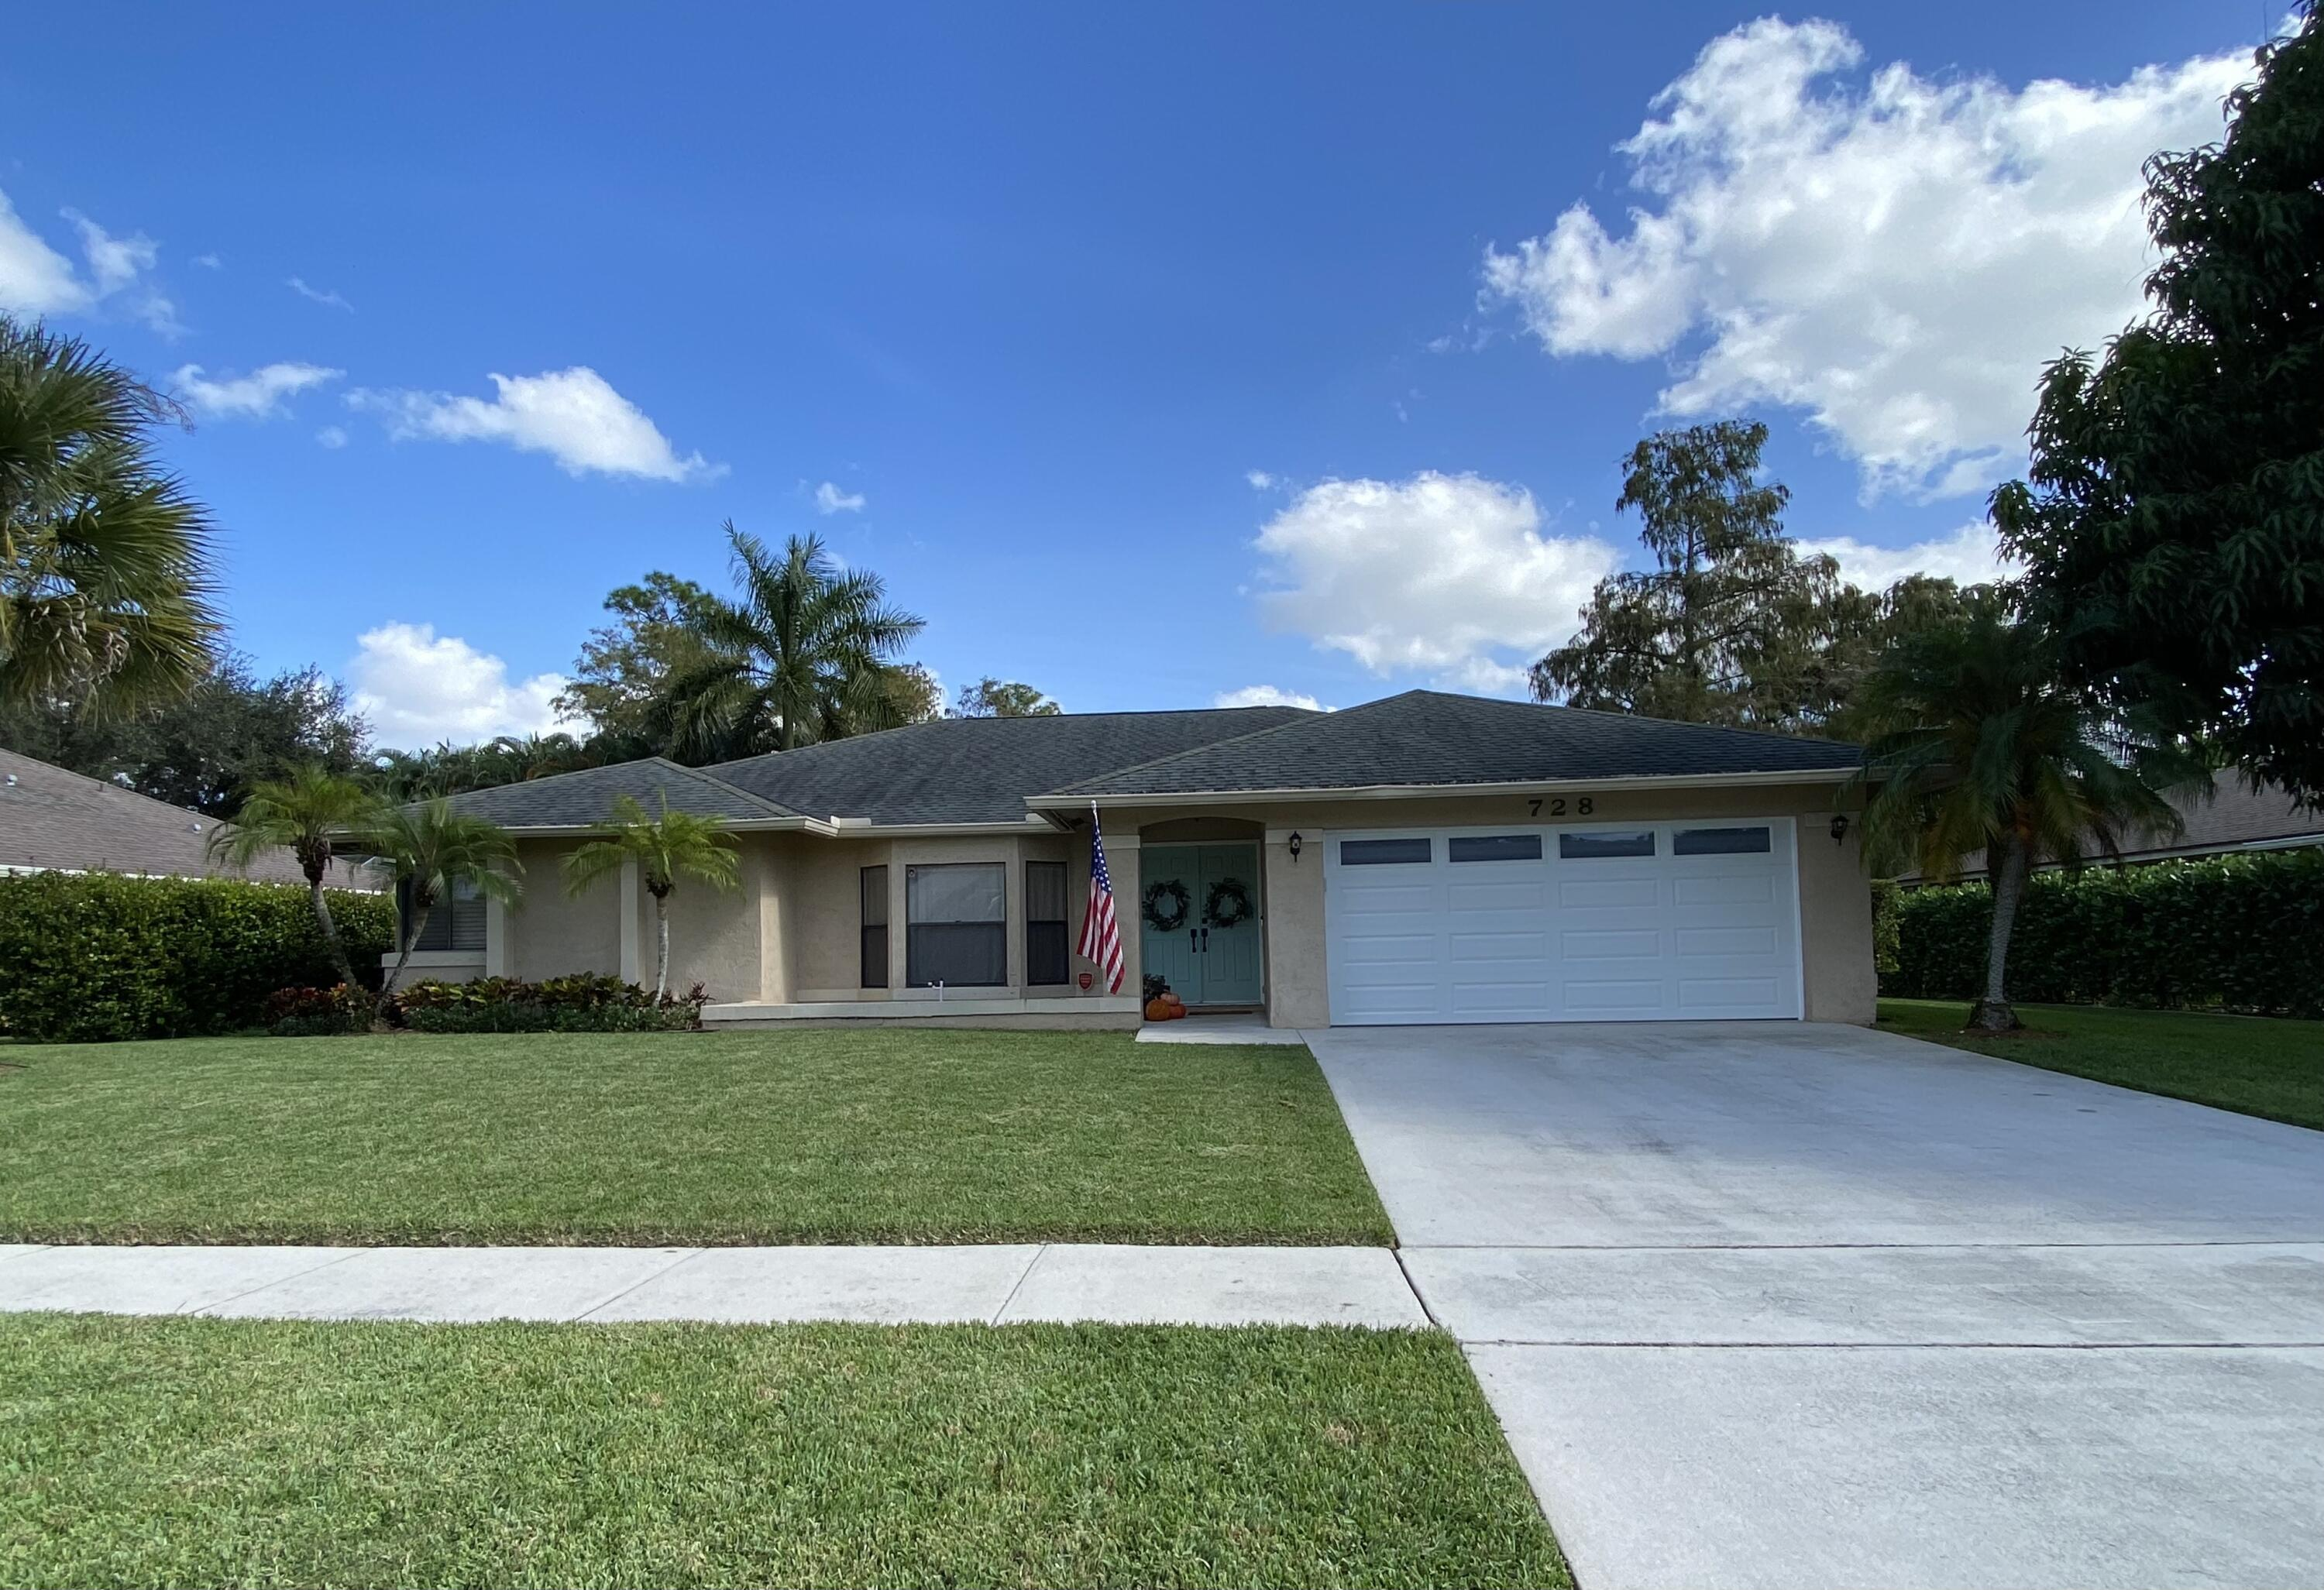 728  Blueberry Drive  For Sale 10753257, FL